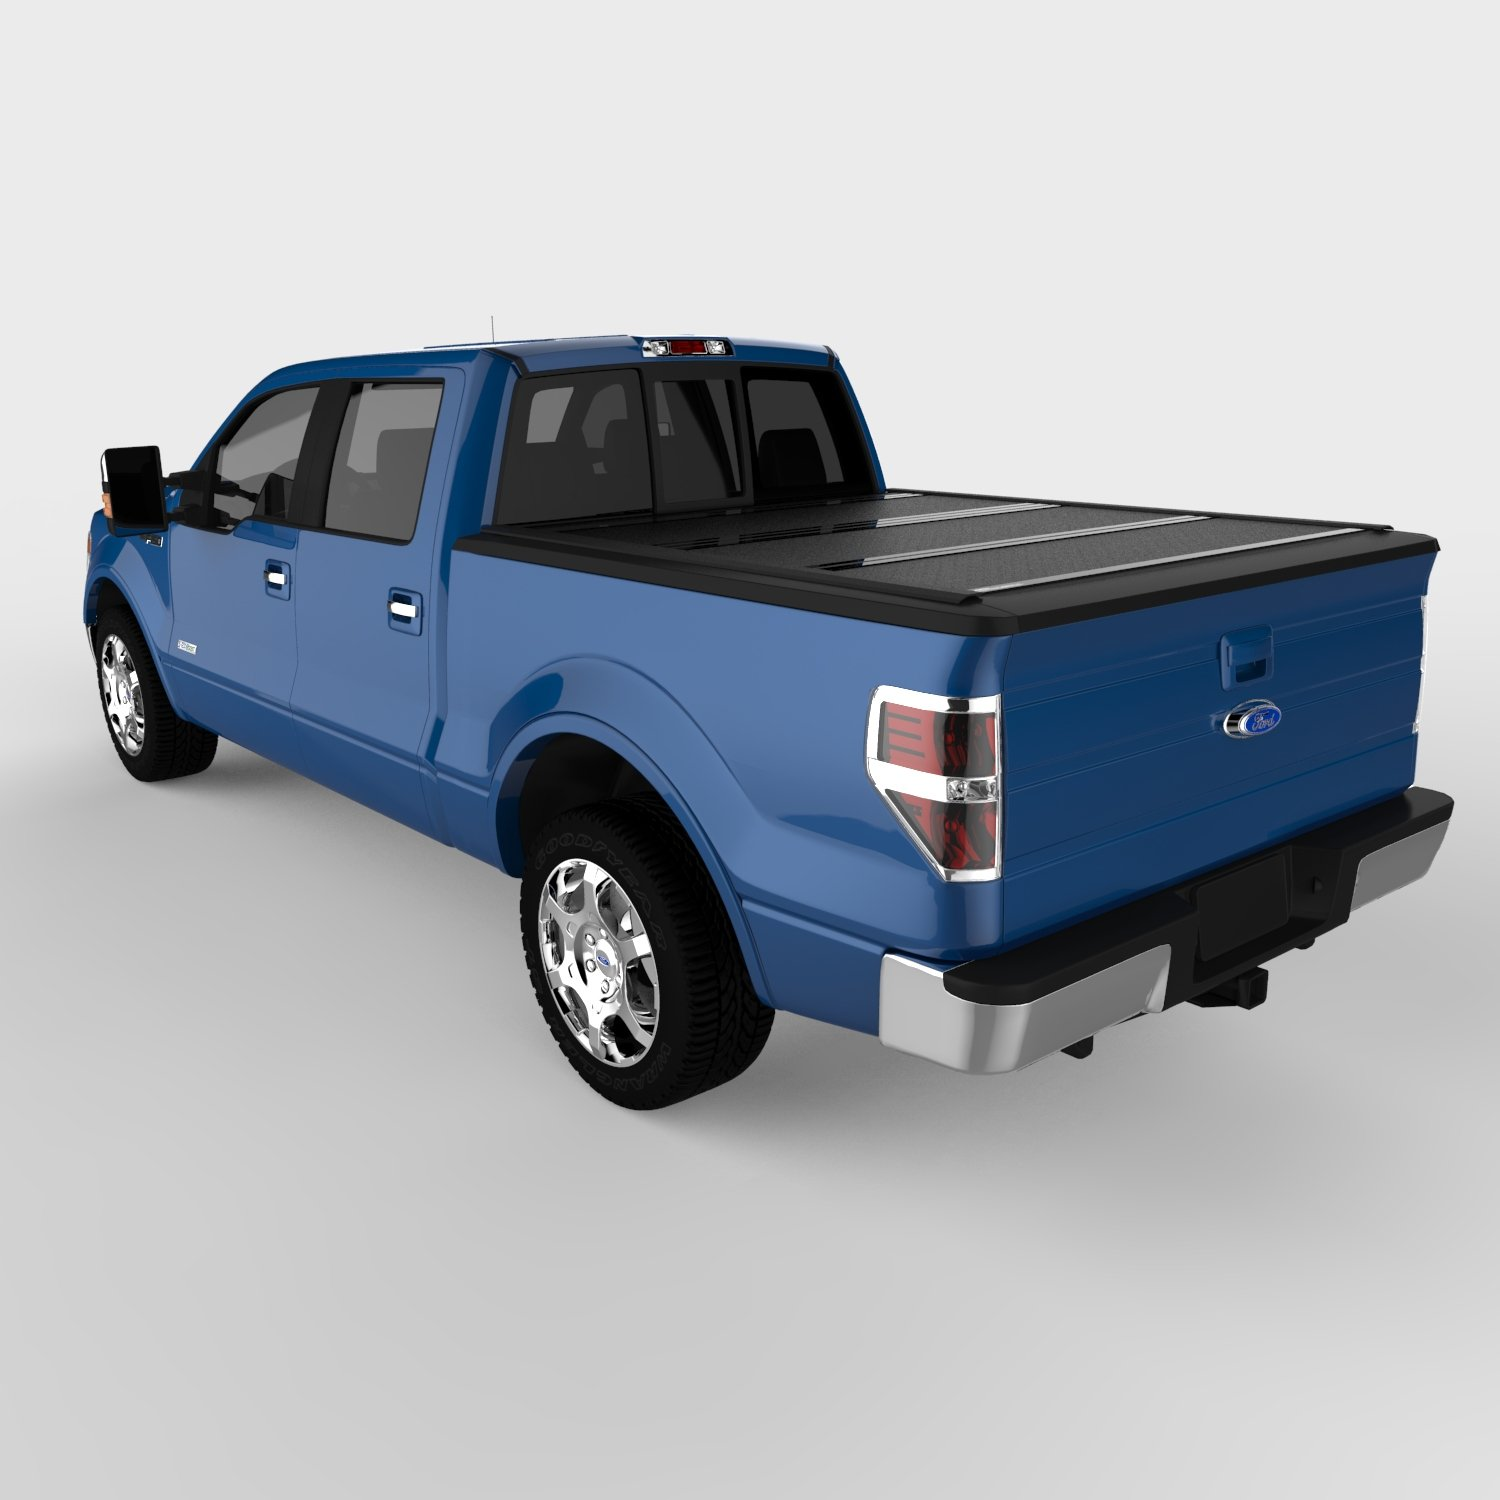 w truck cover track toyota system bed for undercover sys tundra flex folding